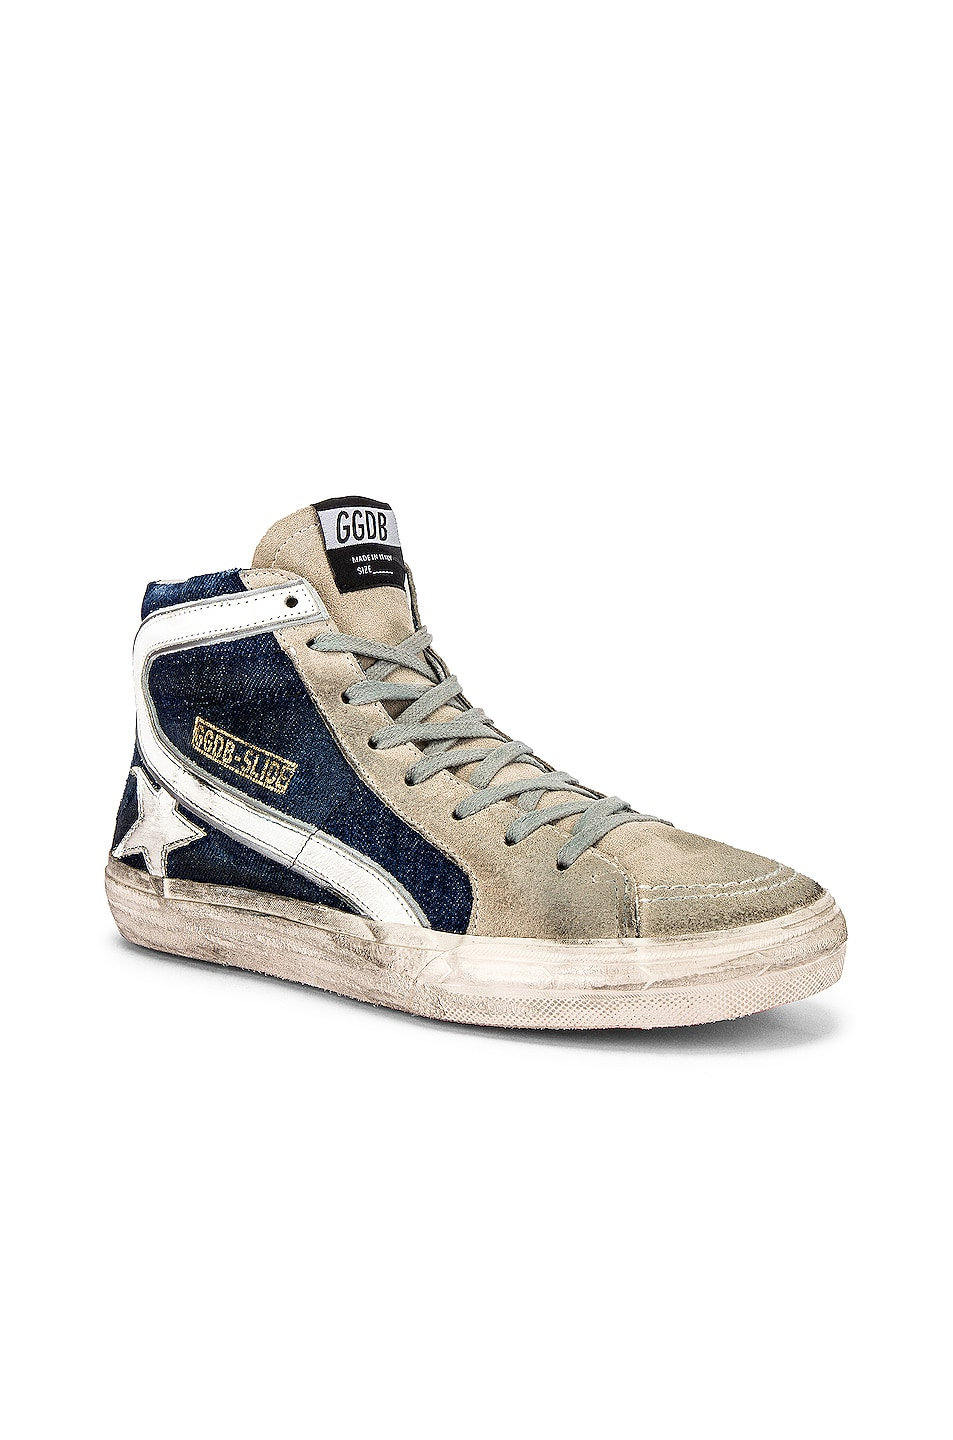 Image 1 of Golden Goose Slide Sneaker in Blue Denim & White Star